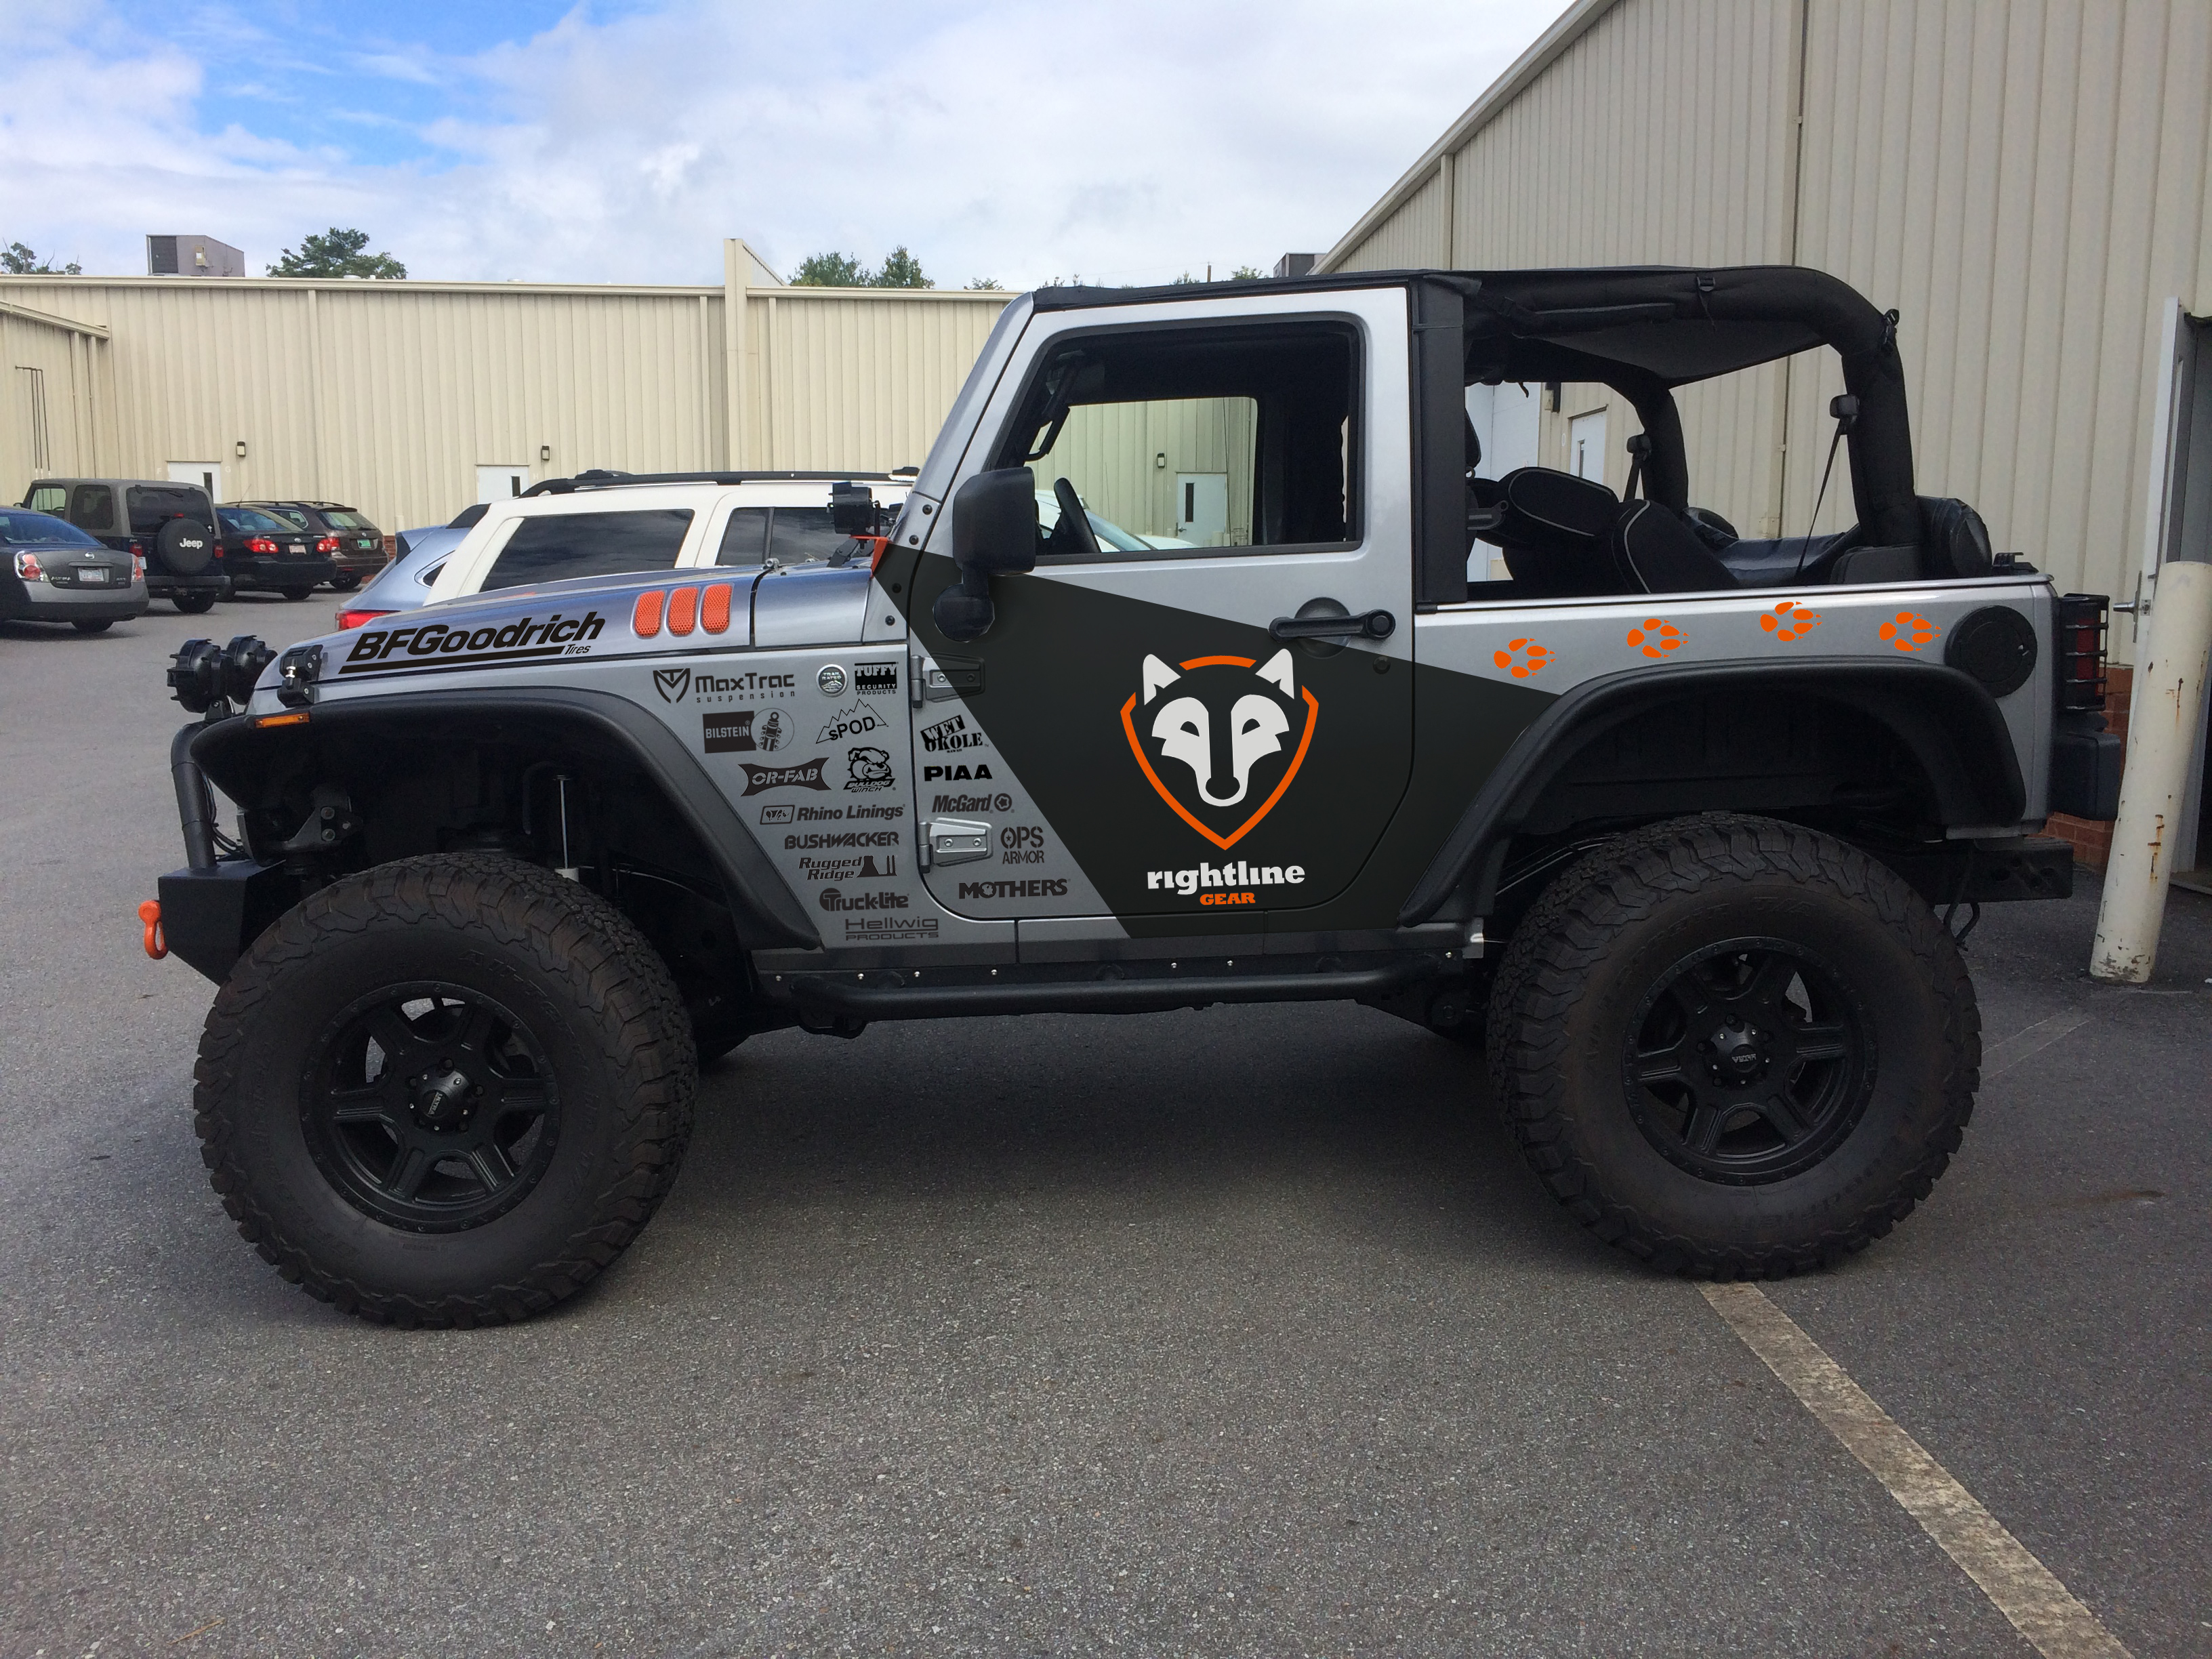 Lifted 4 Door Jeep Black Cool Custom Wrangler Additions With 2011 Grand Cherokee Leveling Kit Excellent Side